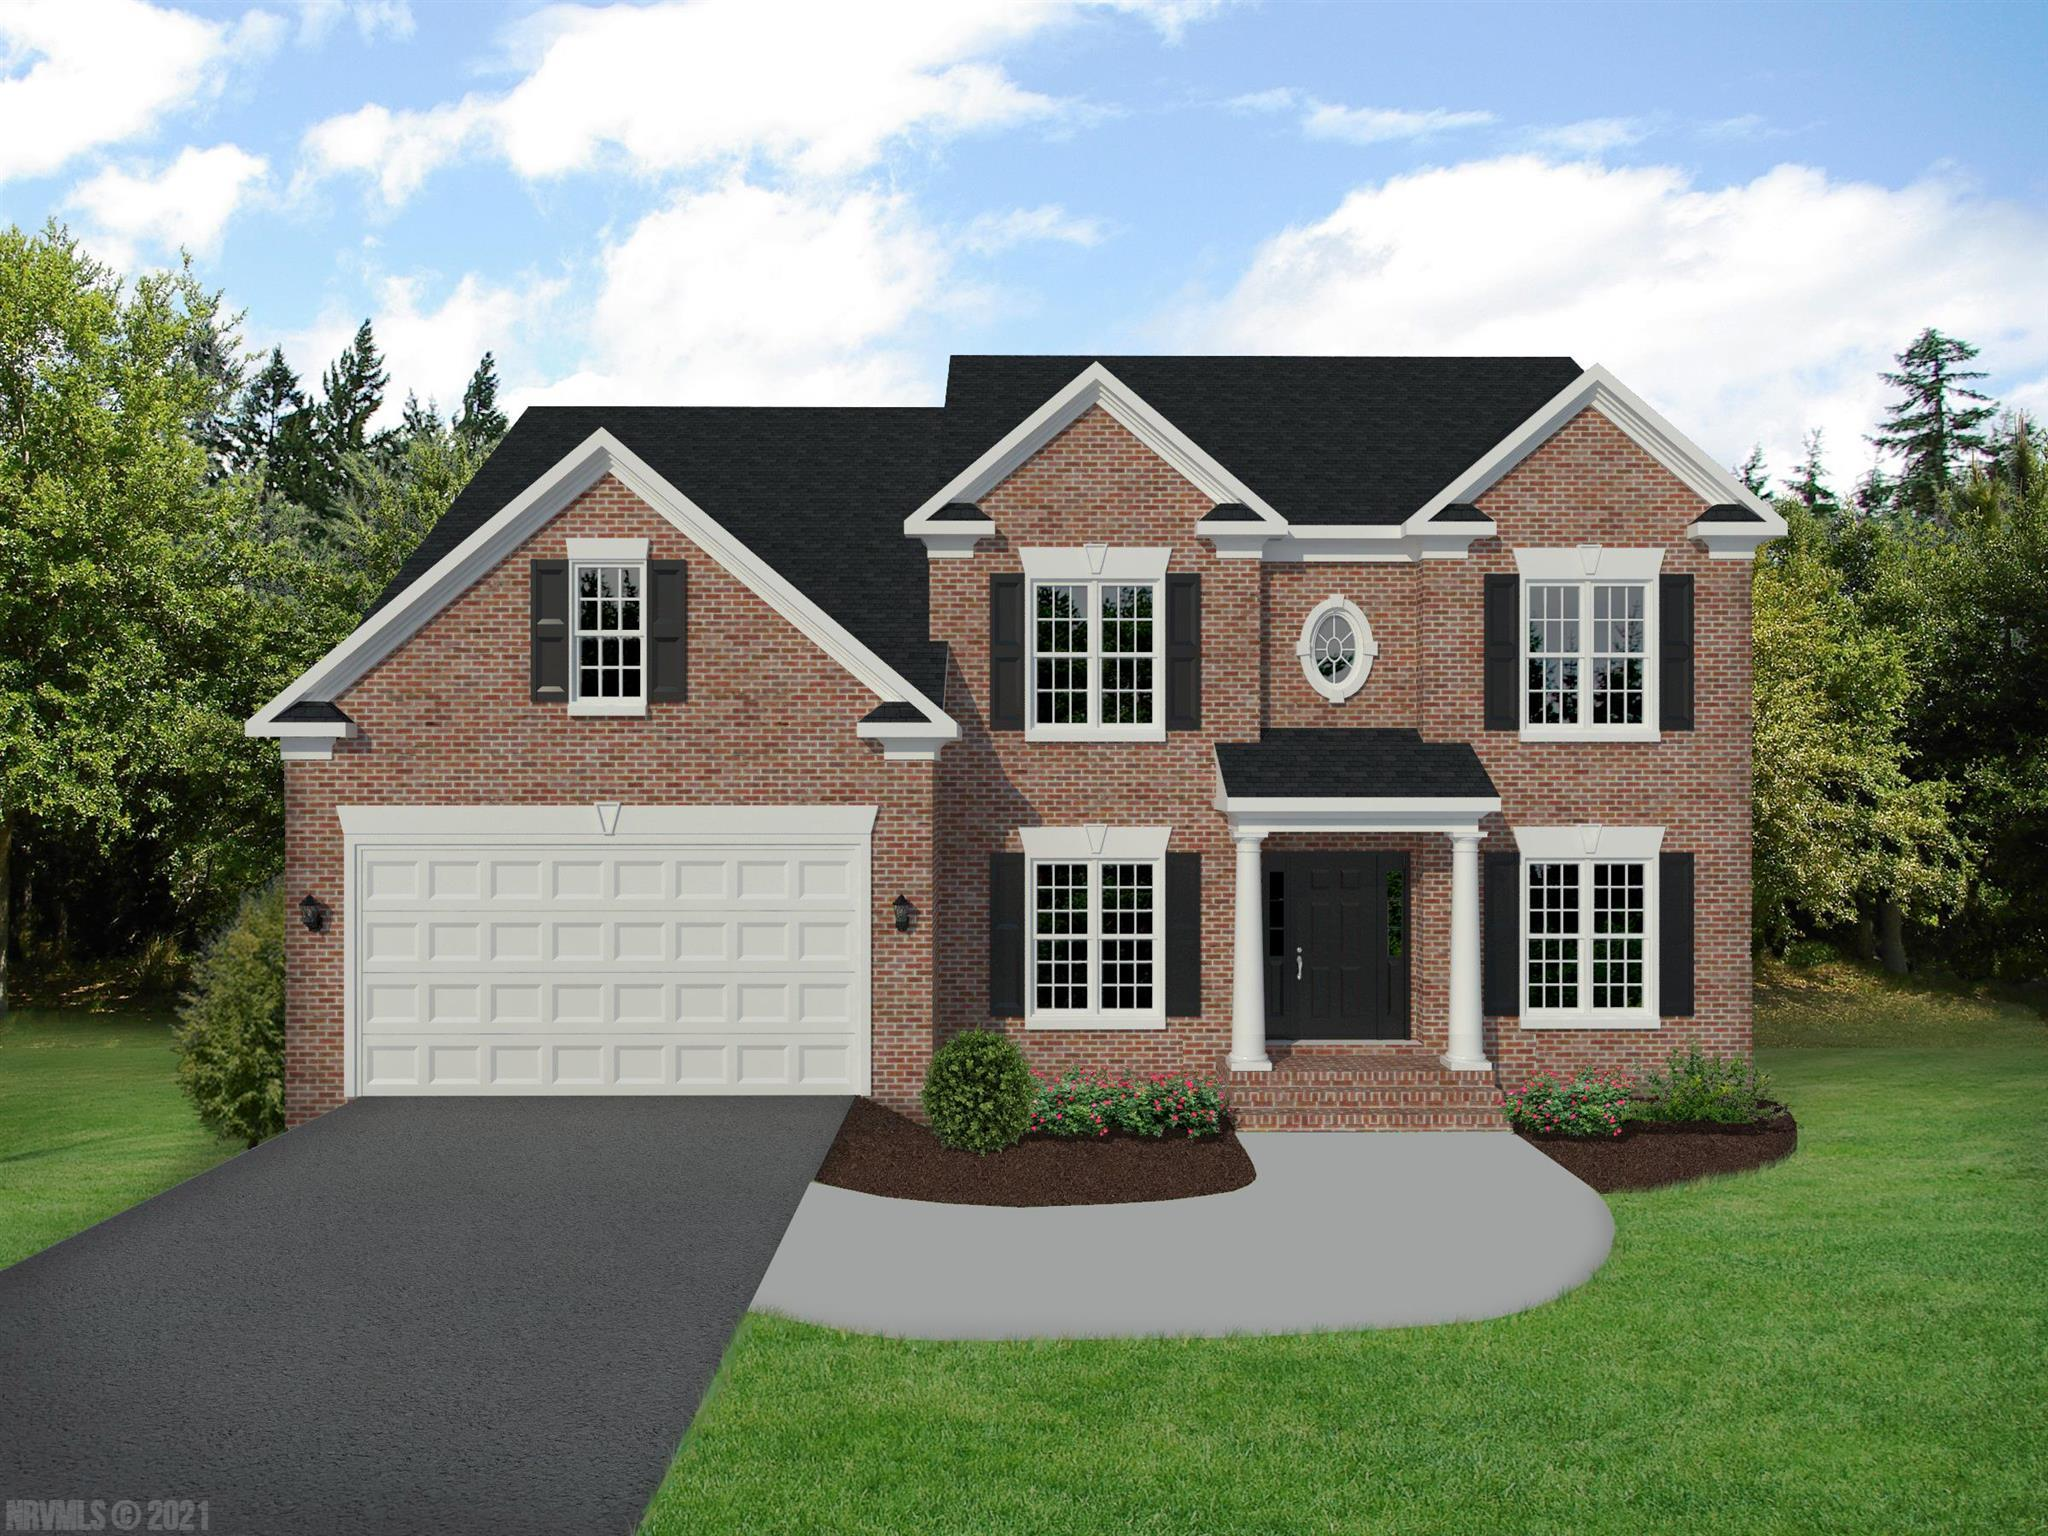 This is a pre-construction listing that is not yet built. Please find information below and pictures attached for our Dovercroft style home which offers 2450 square feet above grade, and 9' framed walls on first floor with smooth drywall finish.  This house plan incorporates hardwoods on the entire main living level, ceramic tile in the baths and laundry, oak treads to the second floor if applicable, and carpet throughout remaining areas.  The master shower offers ceramic tiled walls and floor!  Premium Tahoe cabinets by Timberlake in the kitchen make the home even more beautiful.  The kitchen and bath counter tops are luxurious granite.  Upgraded trim in all finished areas.  Crown molding can be found in the dining room and master bedroom, as well as a chair rail with wainscoting in the dining room.  The exterior finishes consist of double-hung windows, brick, siding, and architectural shingles.